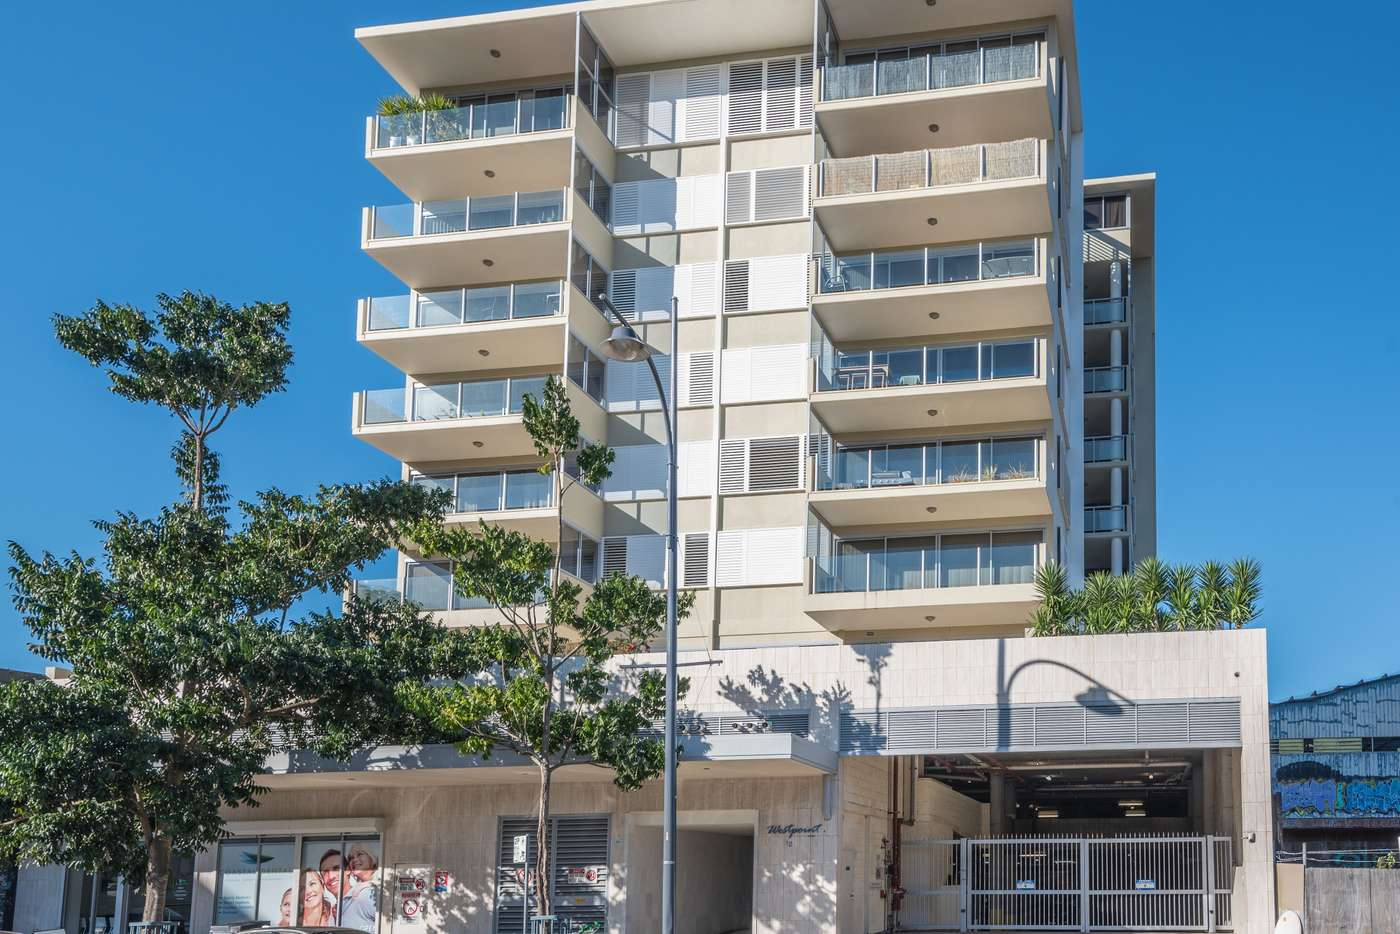 Main view of Homely apartment listing, 8/12 Baker Street, Gosford NSW 2250